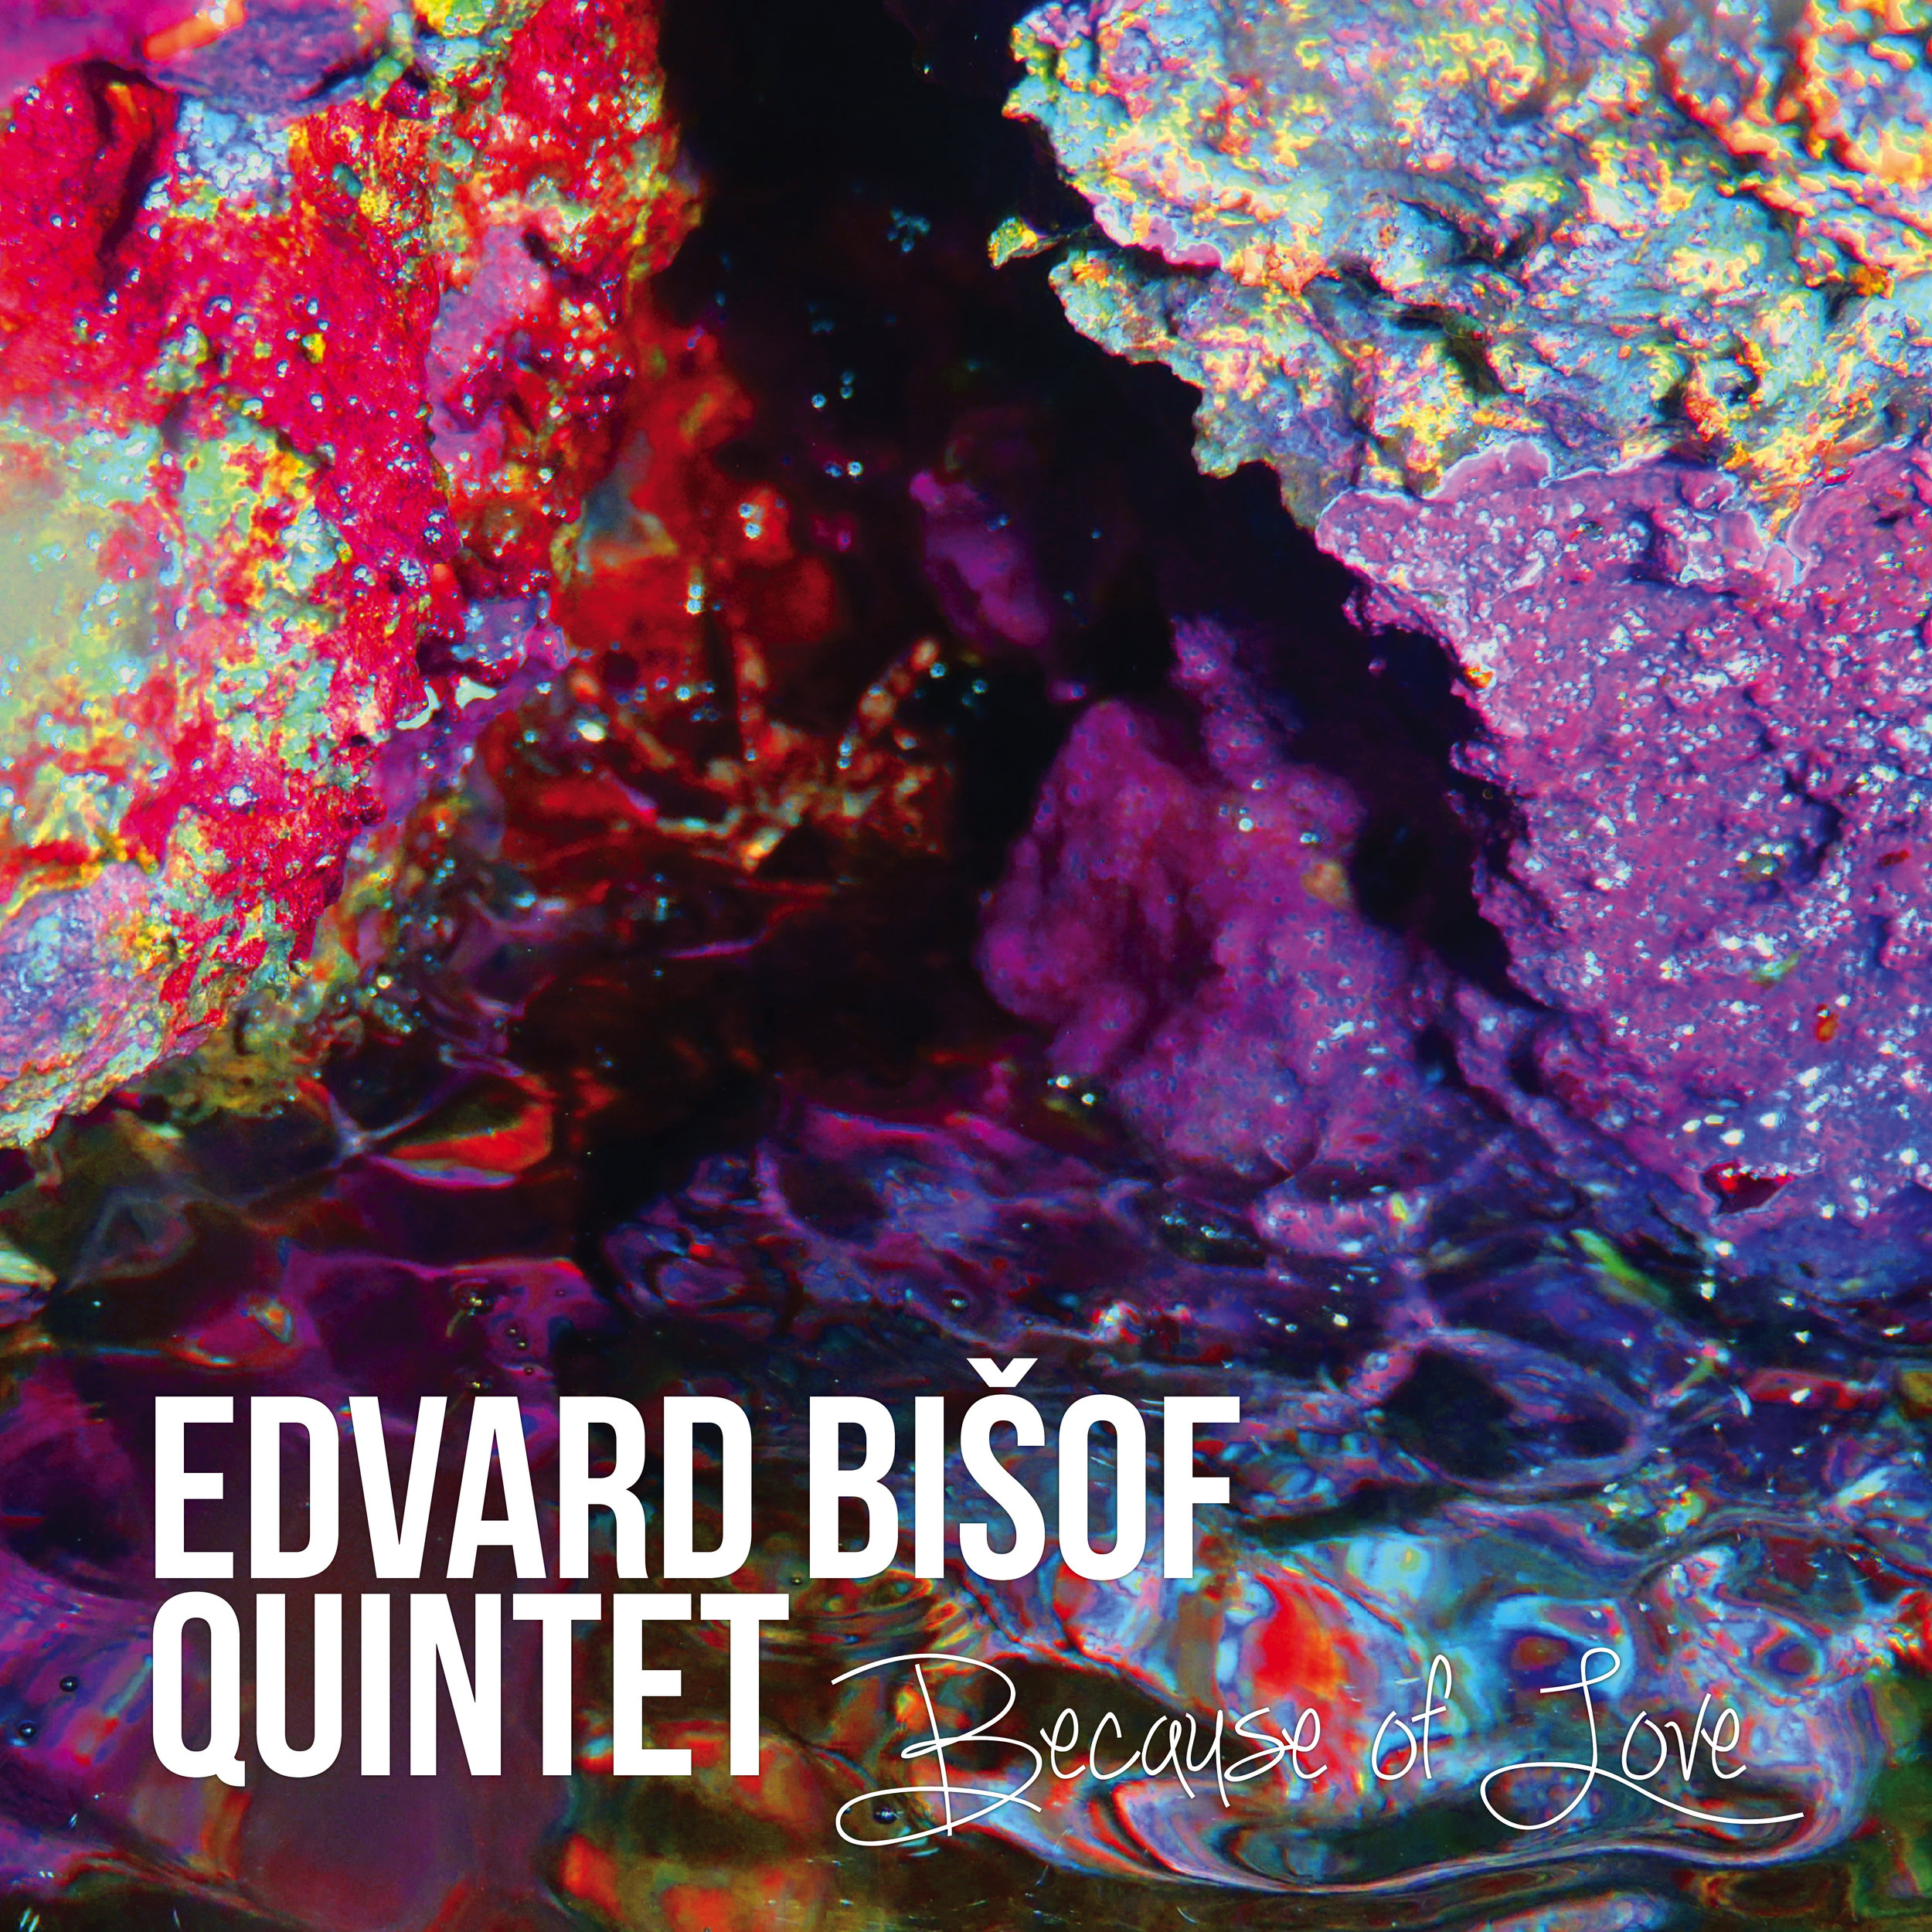 Edvard Bišof Quintet – Because of Love